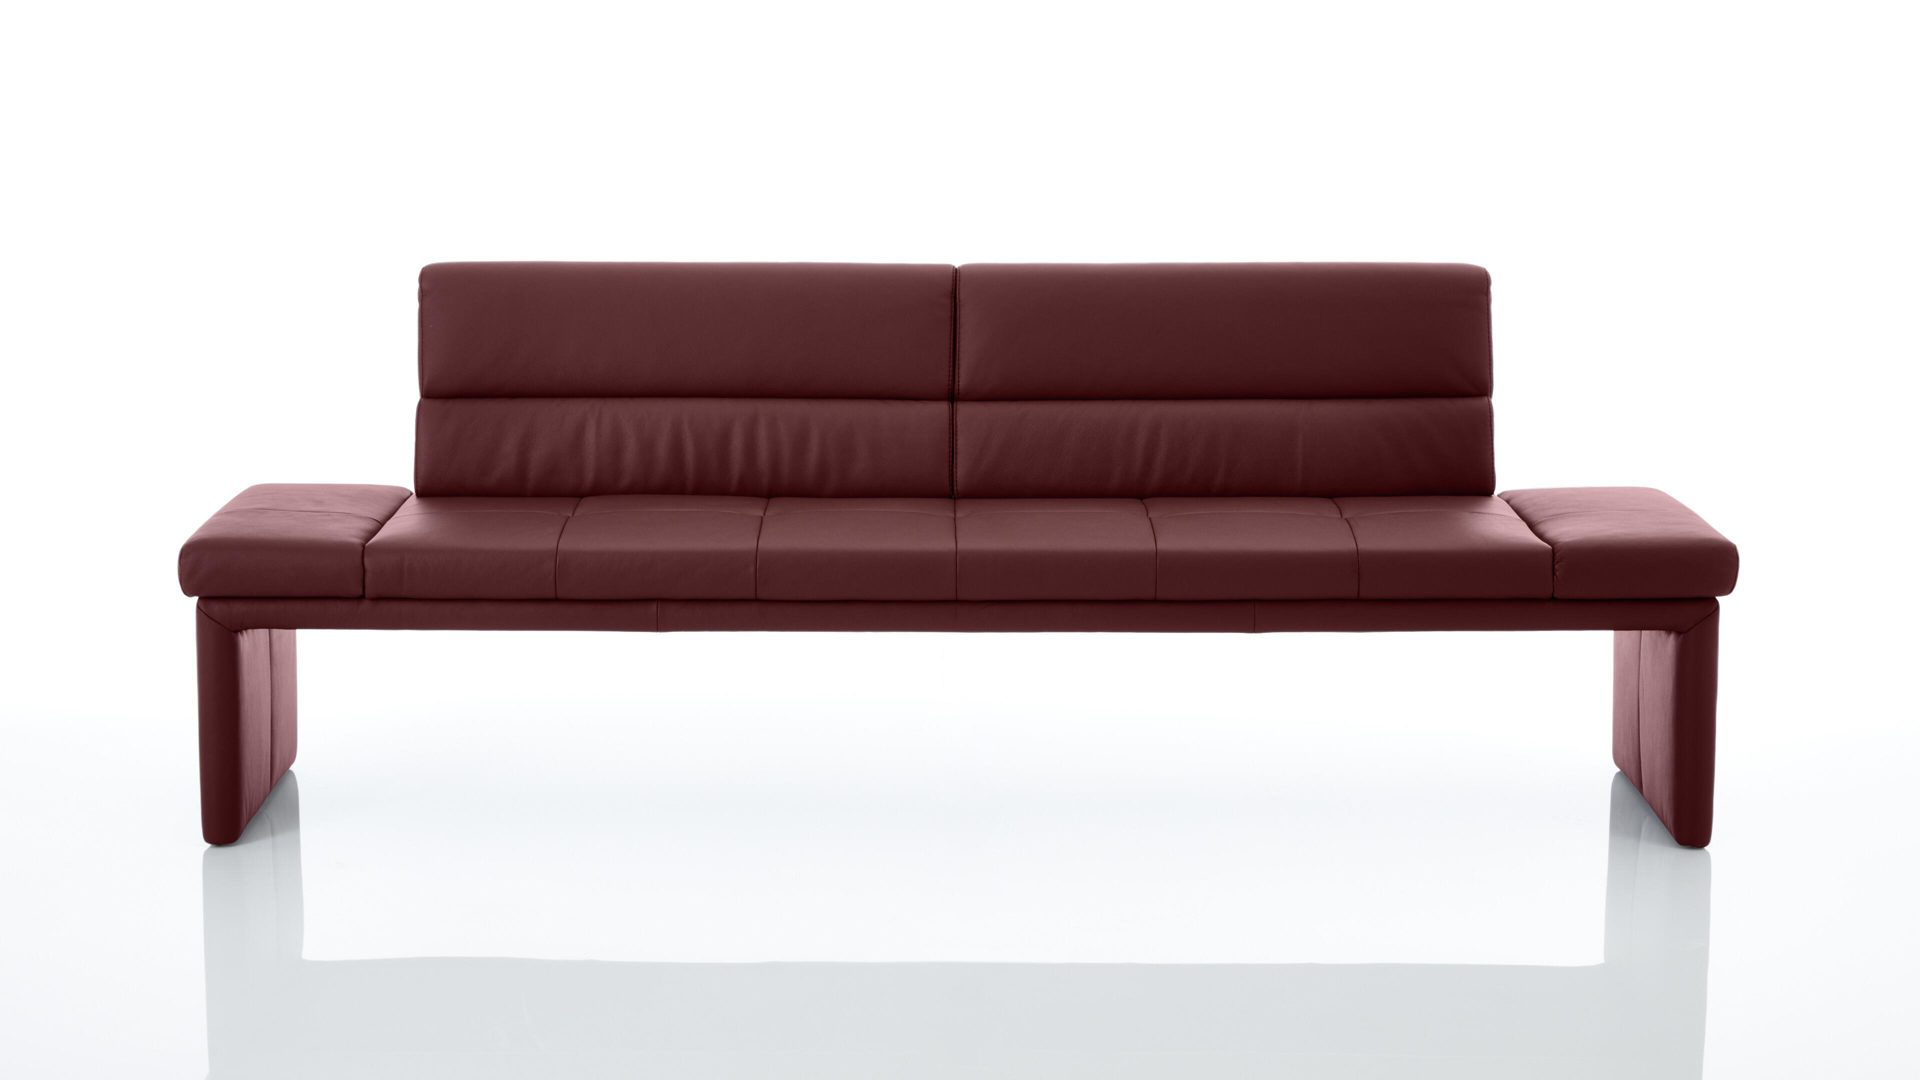 Polsterbank Interliving aus Leder in Rot Interliving Esszimmer Serie 5601 – Solobank bordeauxrotes LongLife-Leder Bronco Bordo 15 – Länge ca. 247 cm